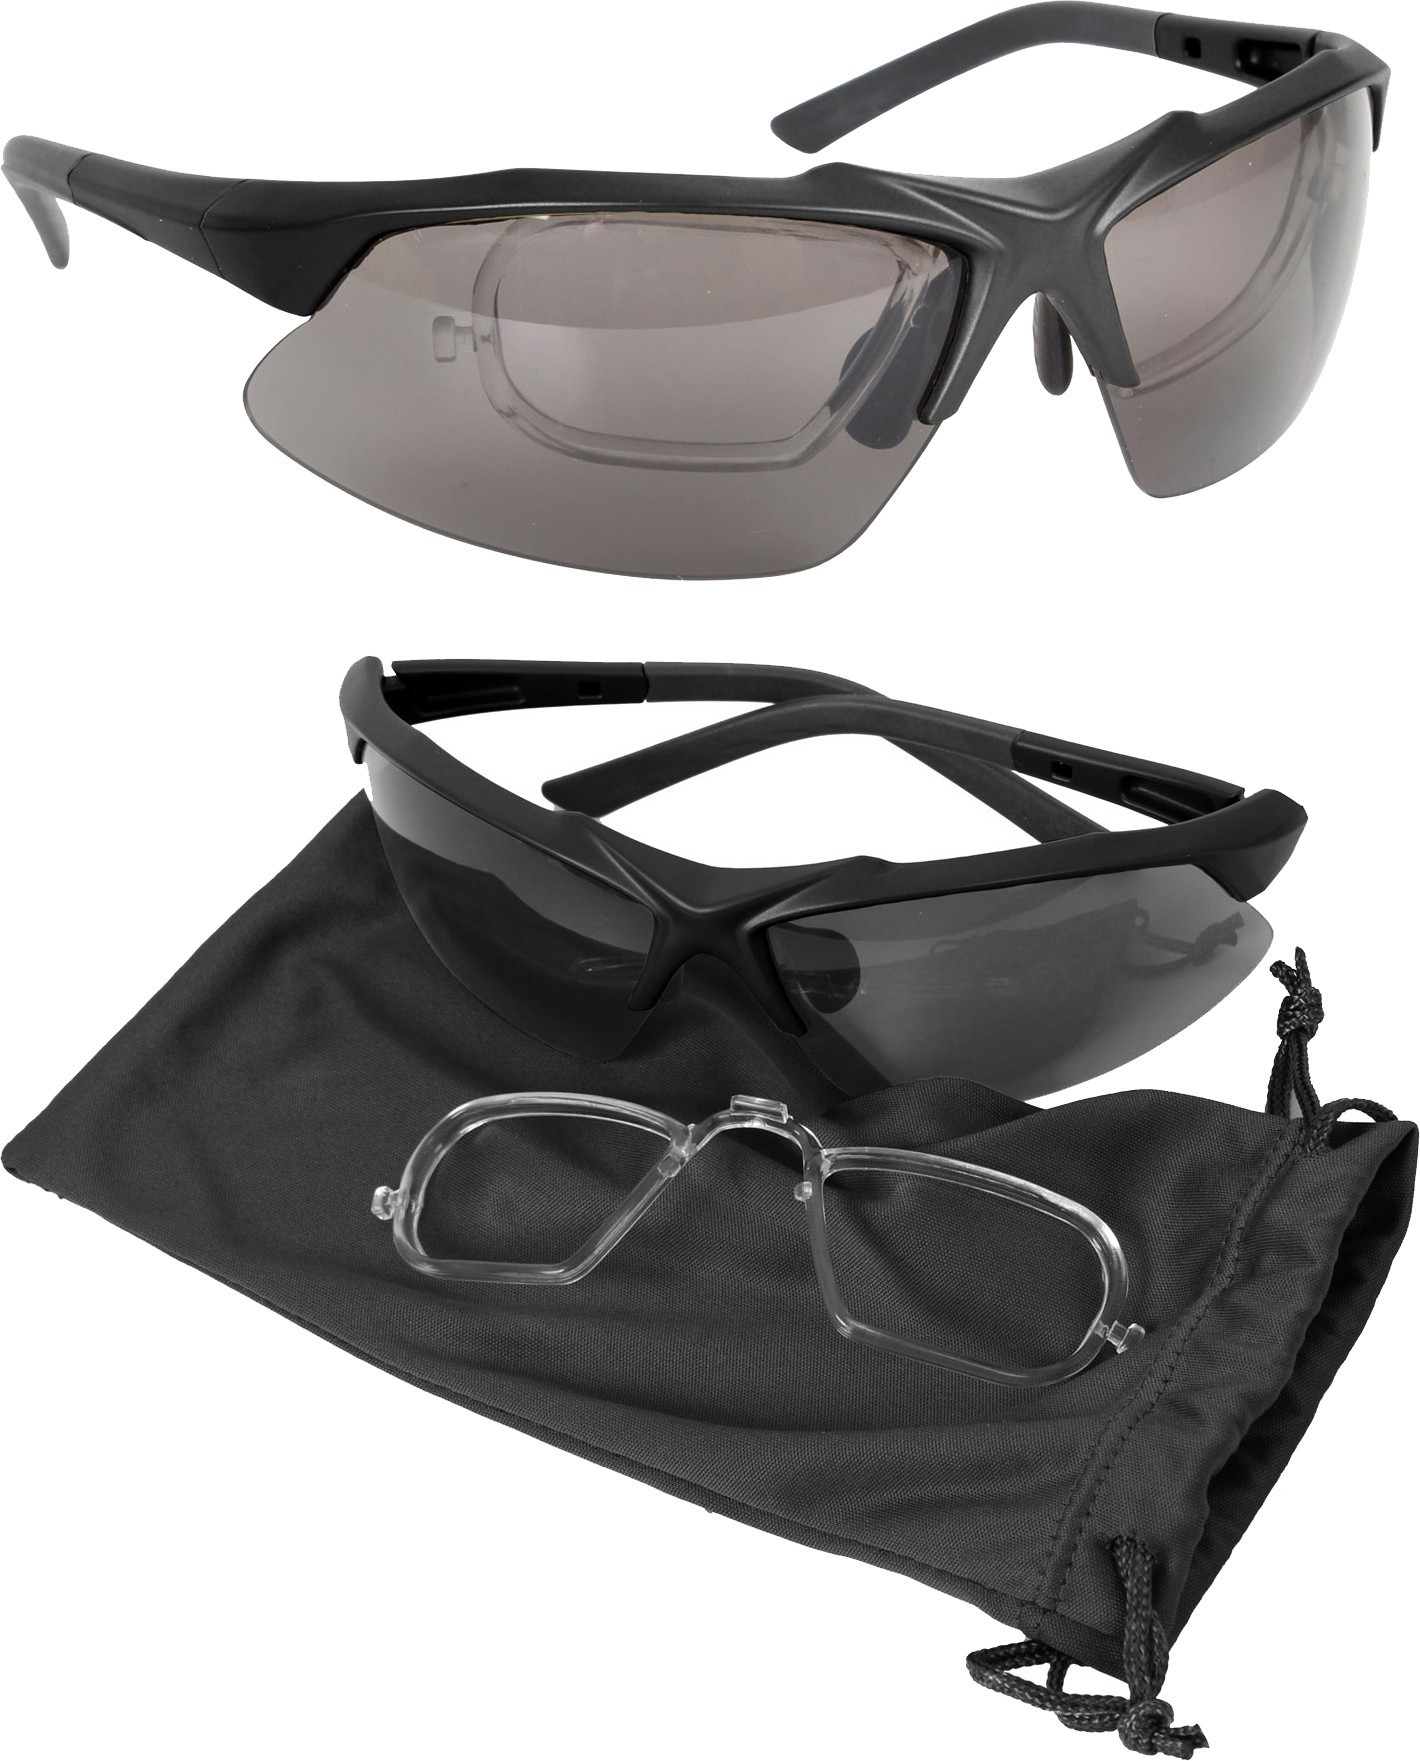 1be58928802 Smoke Lens Tactical Ballistic Eyewear Kit With Prescription Lens Holder